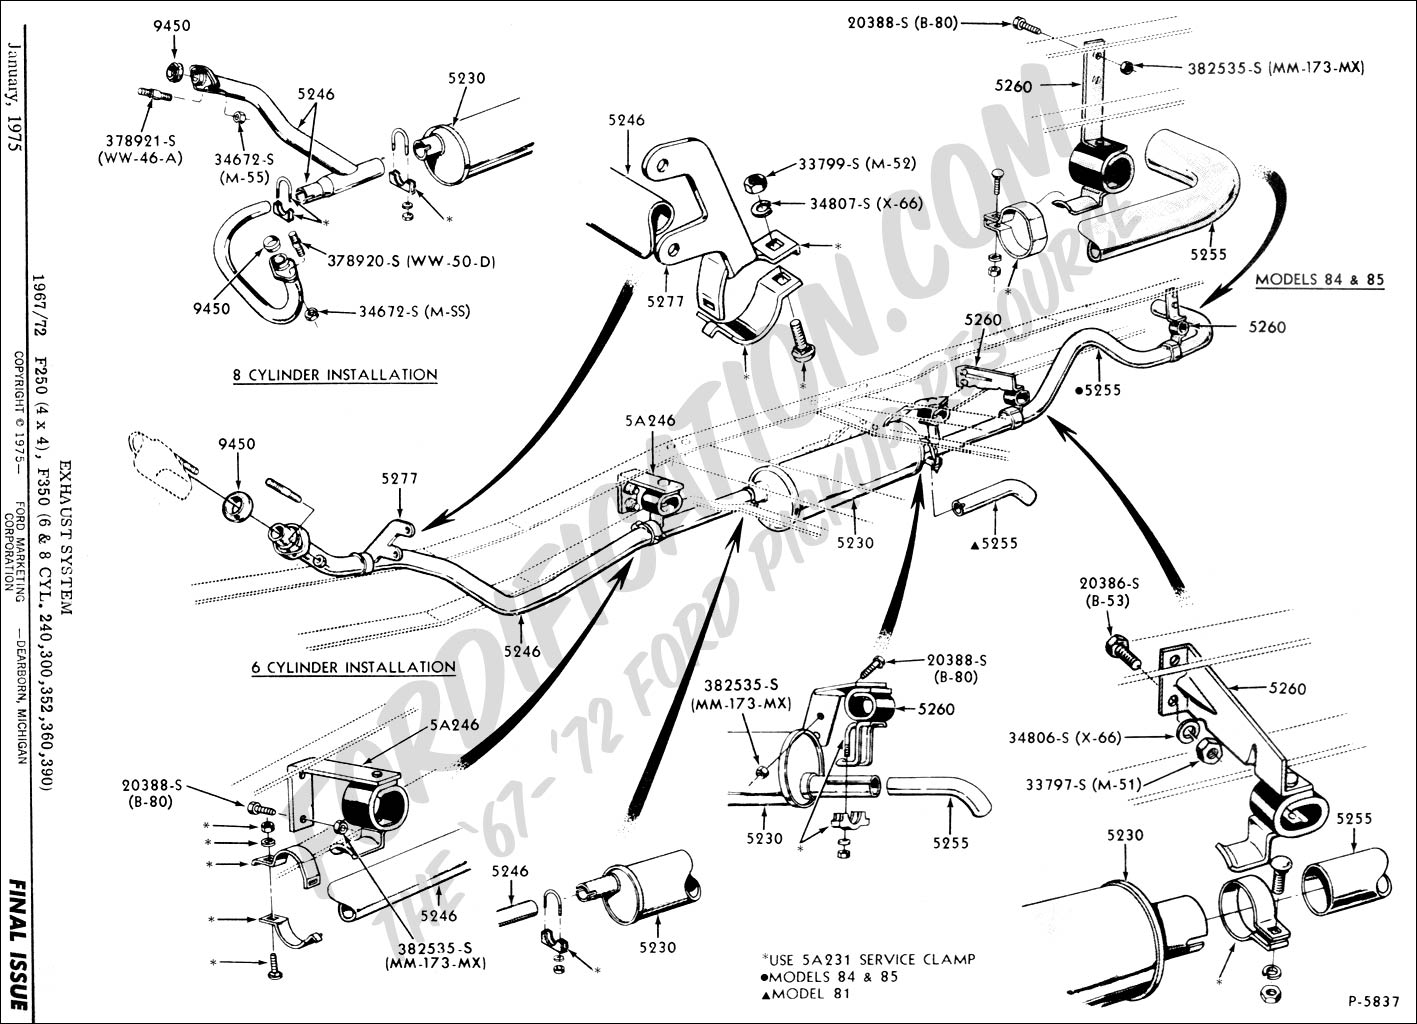 Ford f 250 sel fuse box diagram 93 e350 7 5 wiring diagrams at nhrt